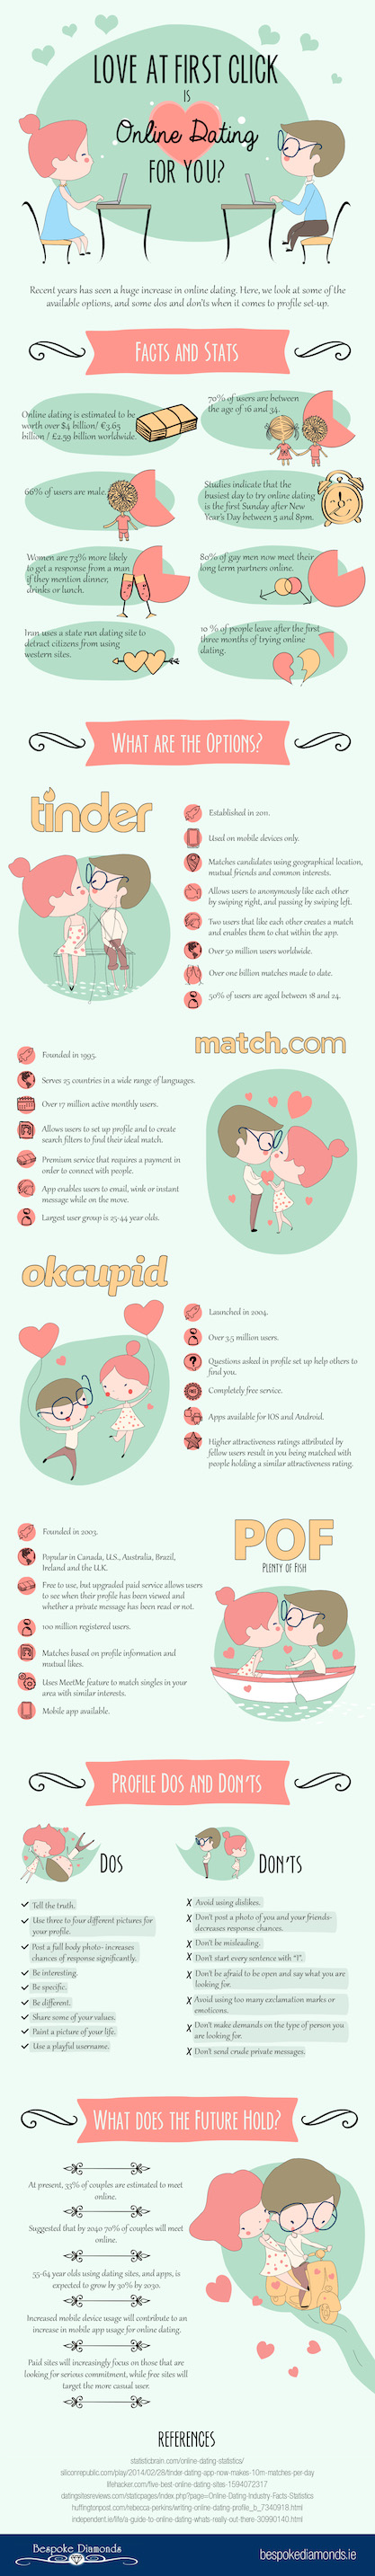 Online Dating Infographic- Bespoke Diamonds copy